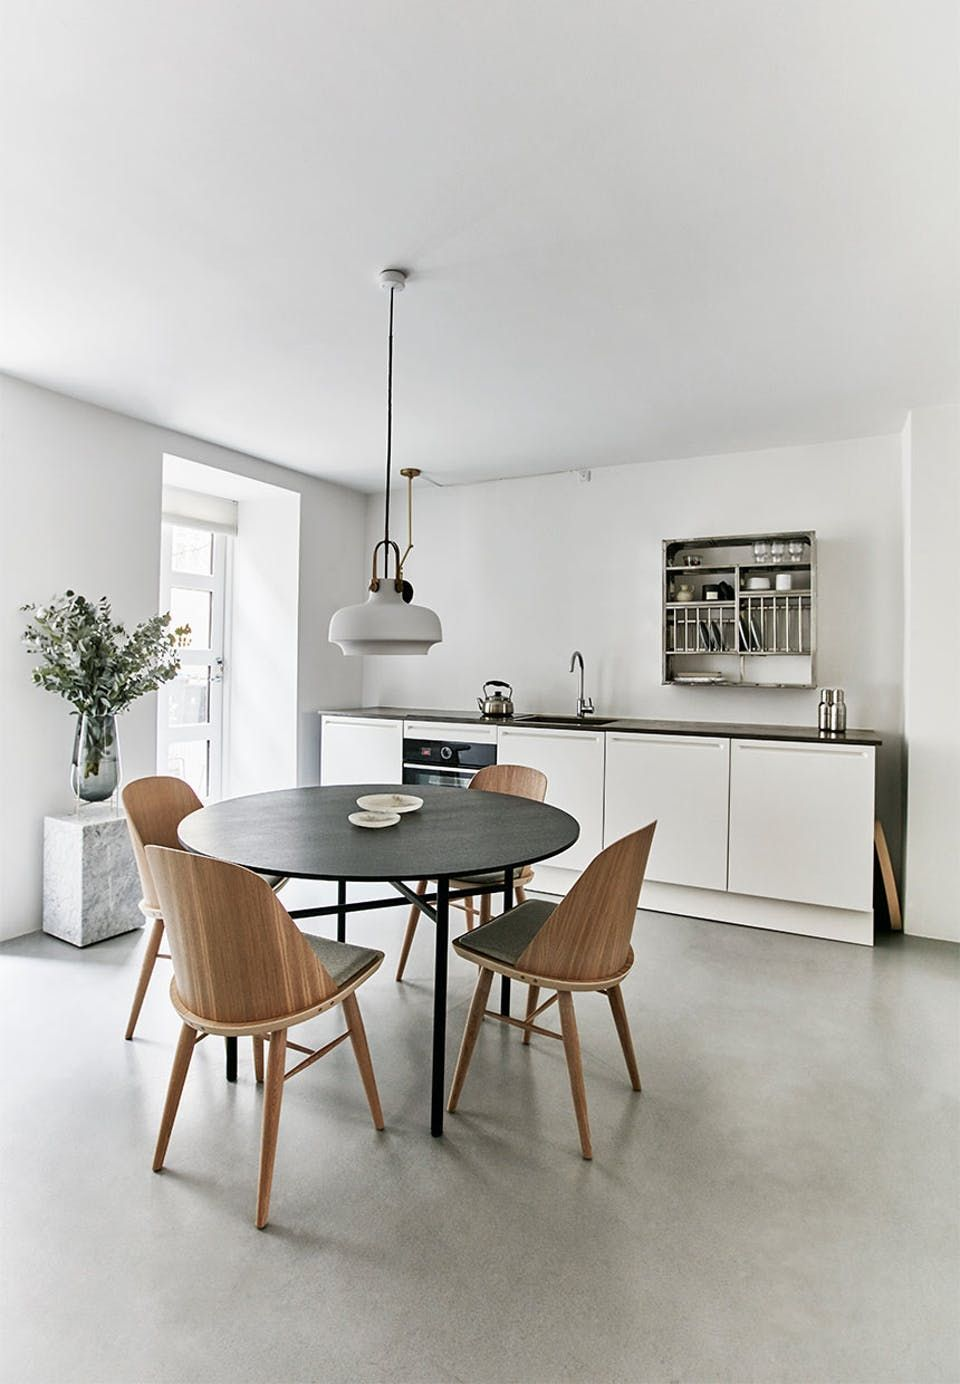 Kitchen and dining area in one bright and open with a minimalistic